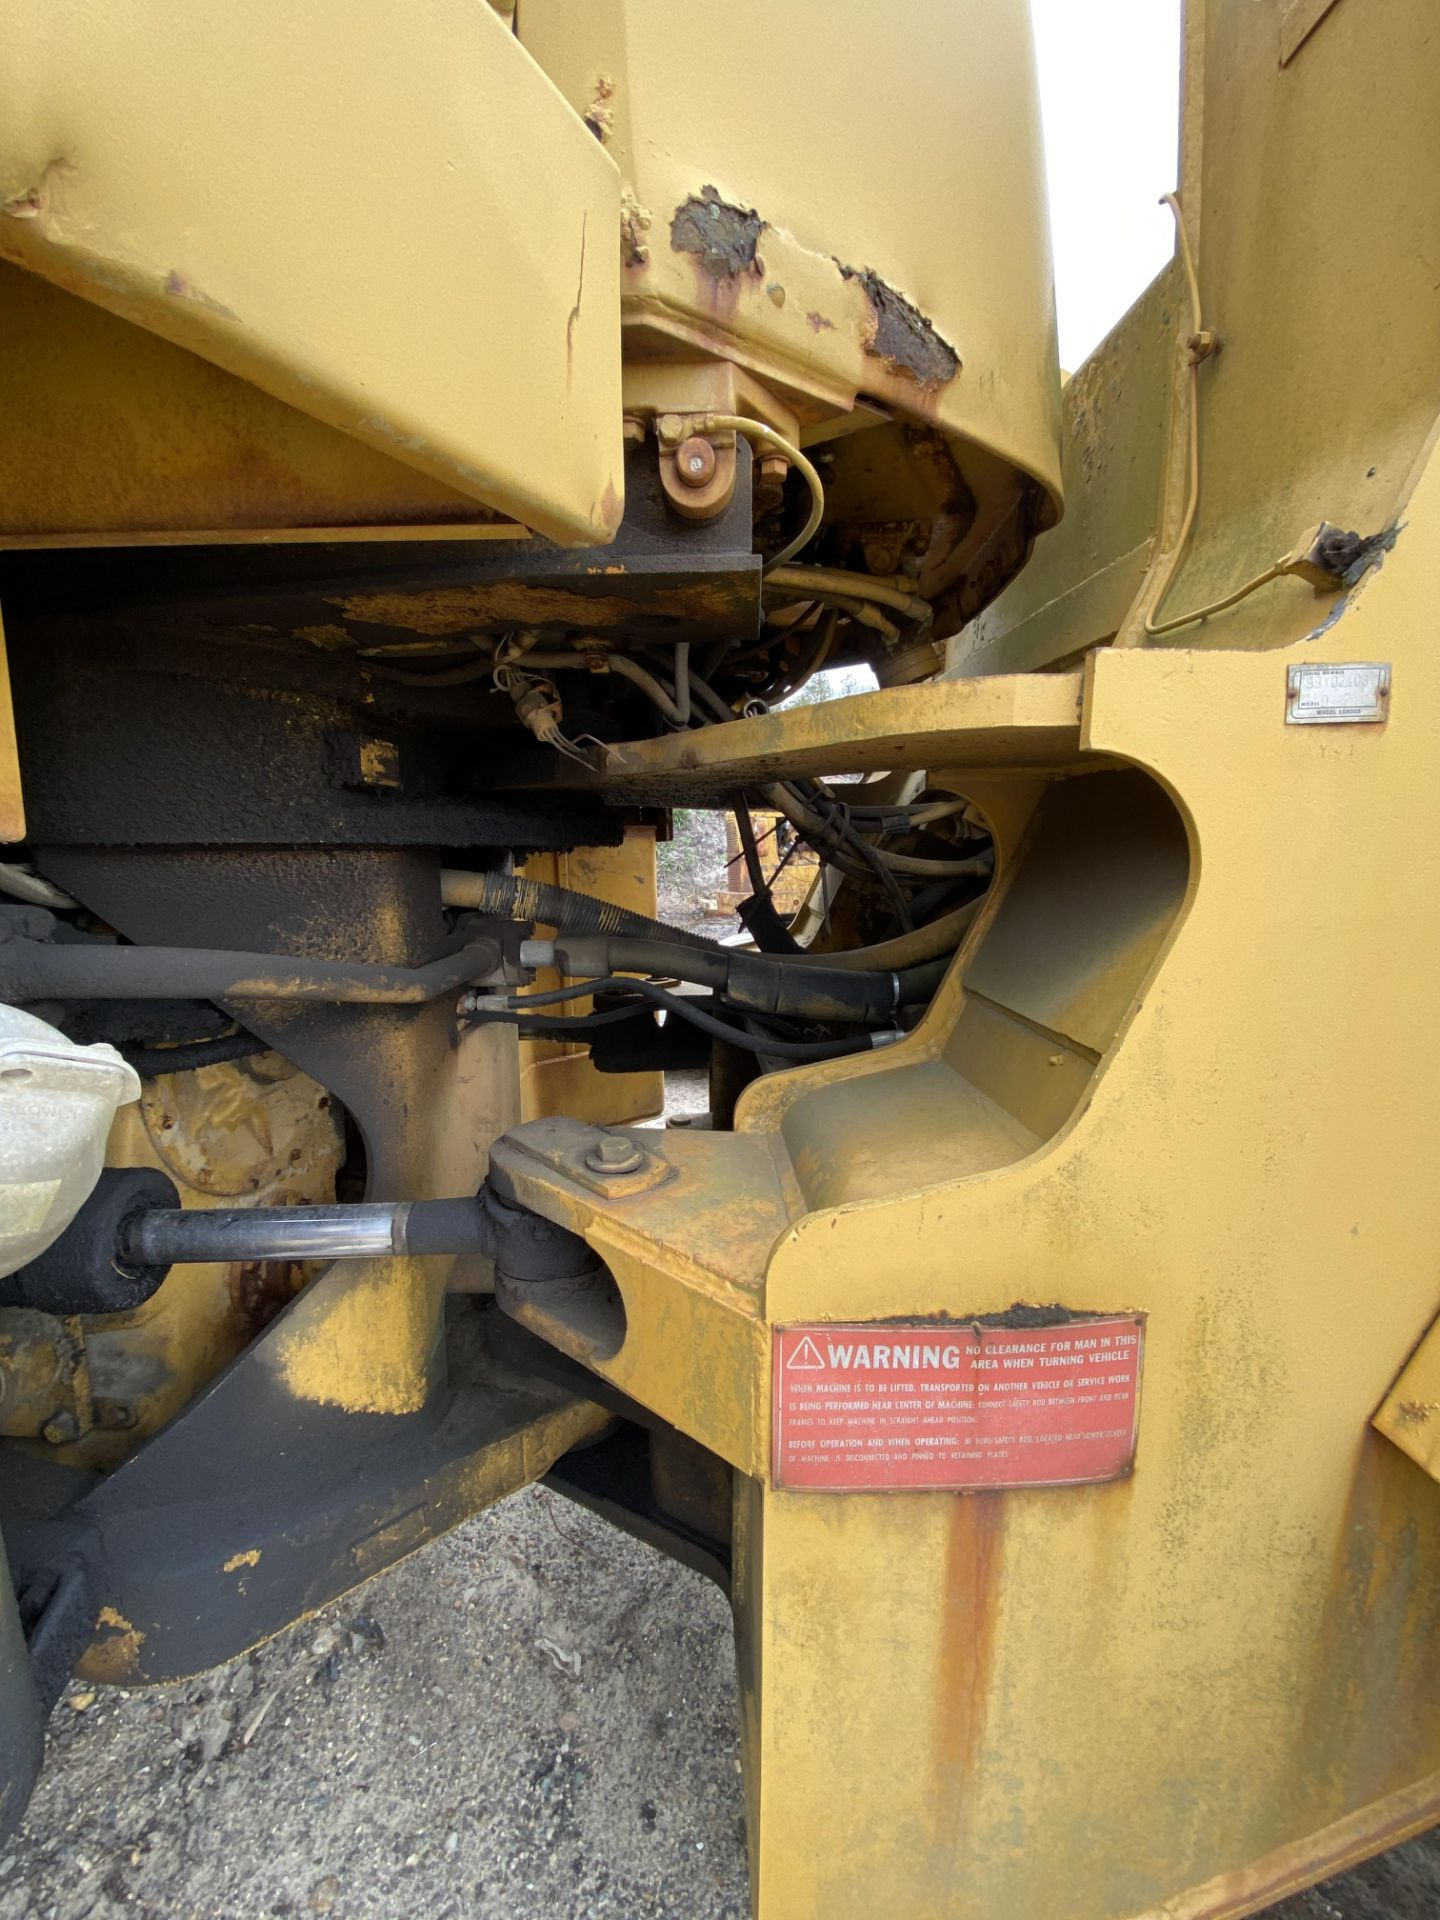 1980 Caterpillar 966D Wheel Loader s/n 99Y02108, Meter Reads 4,664 Hours, Have Title - Image 17 of 23